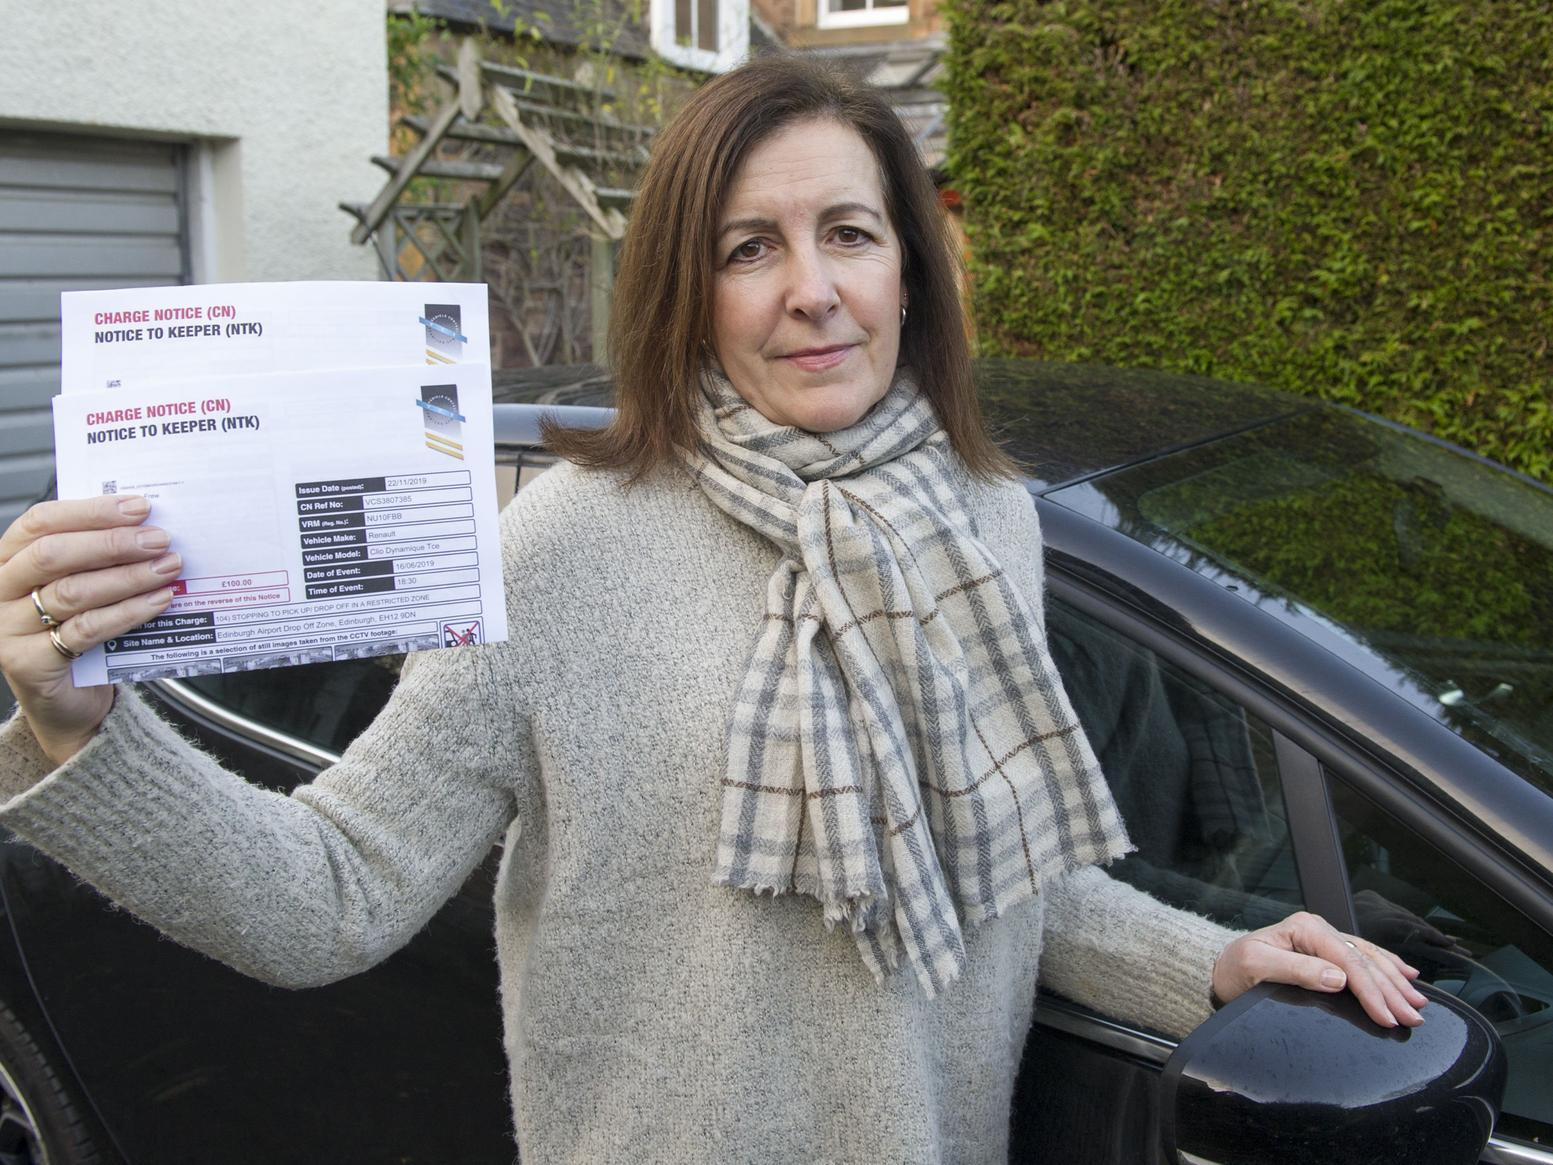 Driver fined £100 at Edinburgh Airport for pick-up mistake has fine revoked after Evening News stepped in